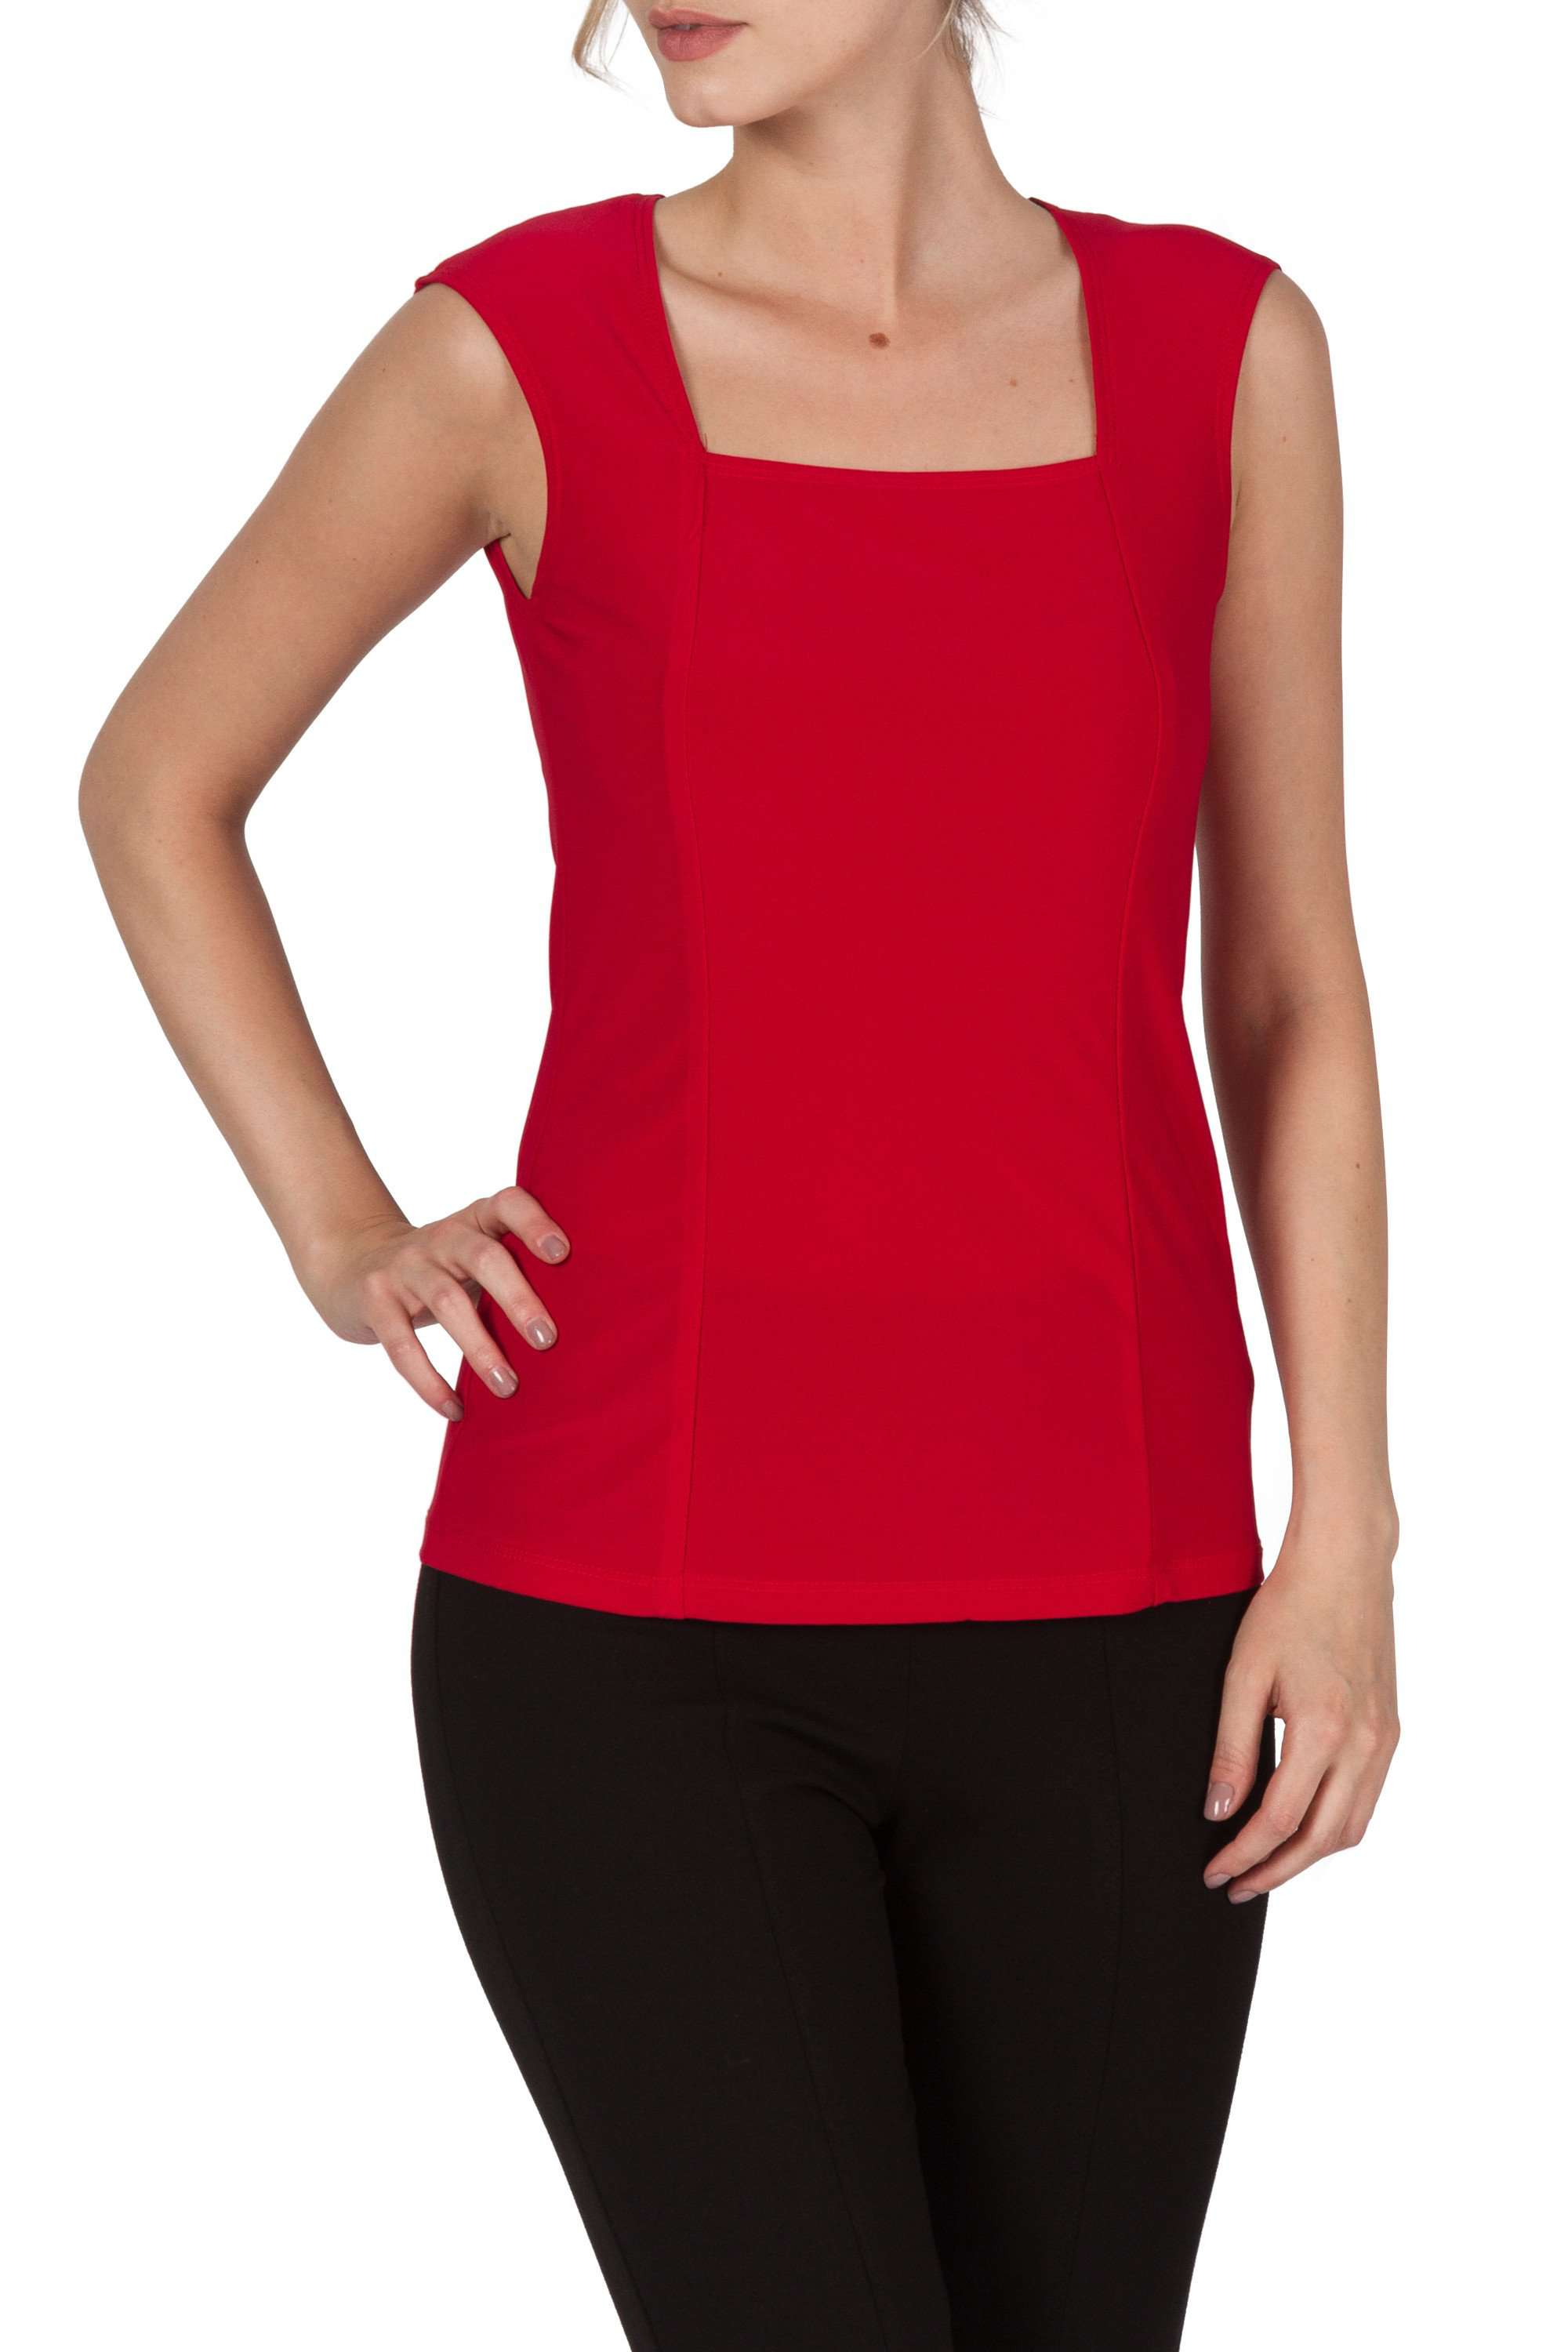 Red Camisole Tank Top Quality Knit Fabric-Comfort Guaranteed-made in Canada - Yvonne Marie